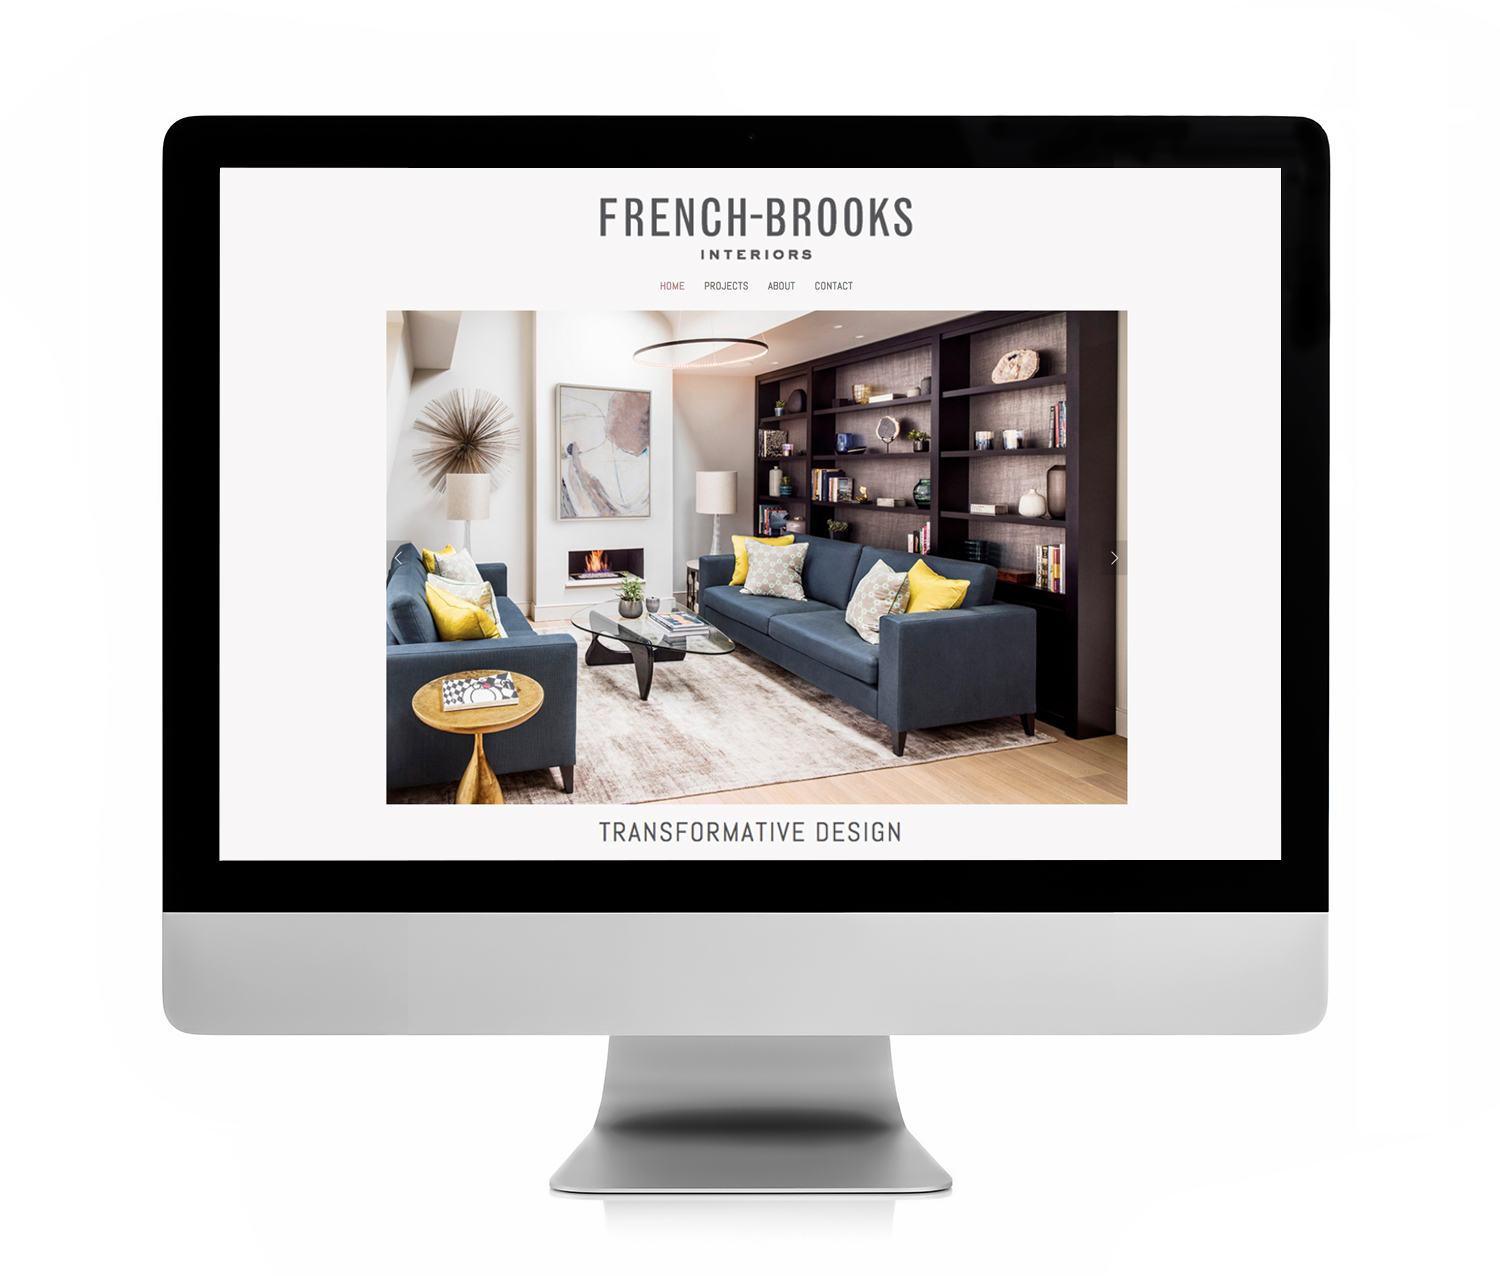 FRENCH-BROOKS INTERIORS